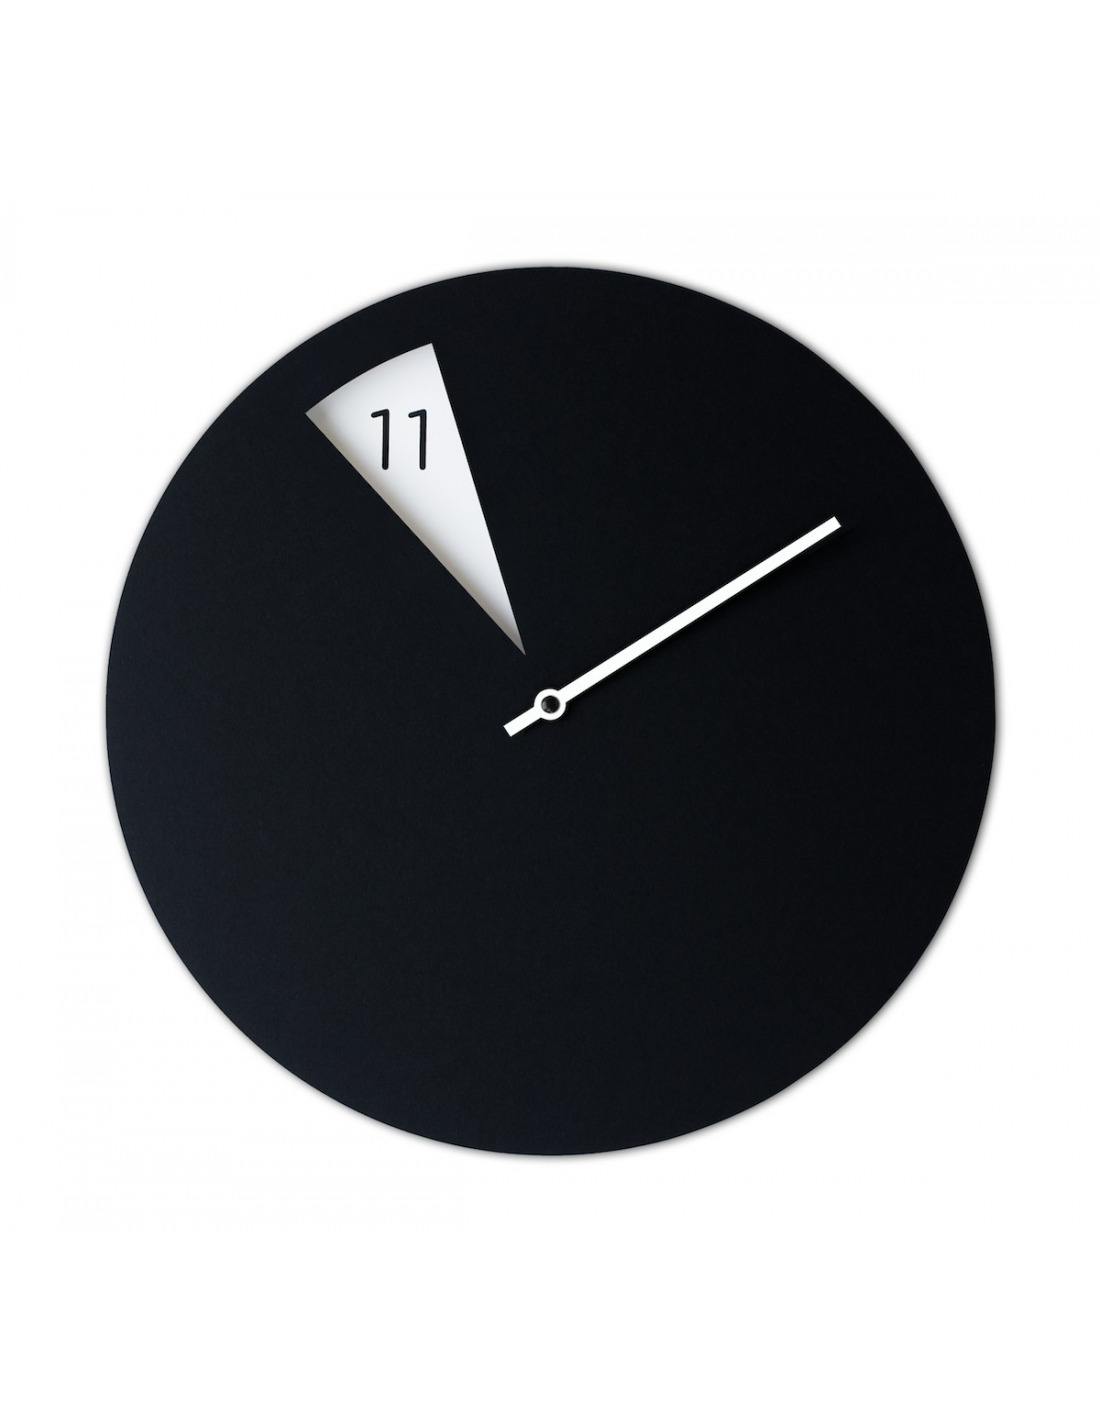 horloge murale design freakishclock noir et blanc en aluminium otoko. Black Bedroom Furniture Sets. Home Design Ideas